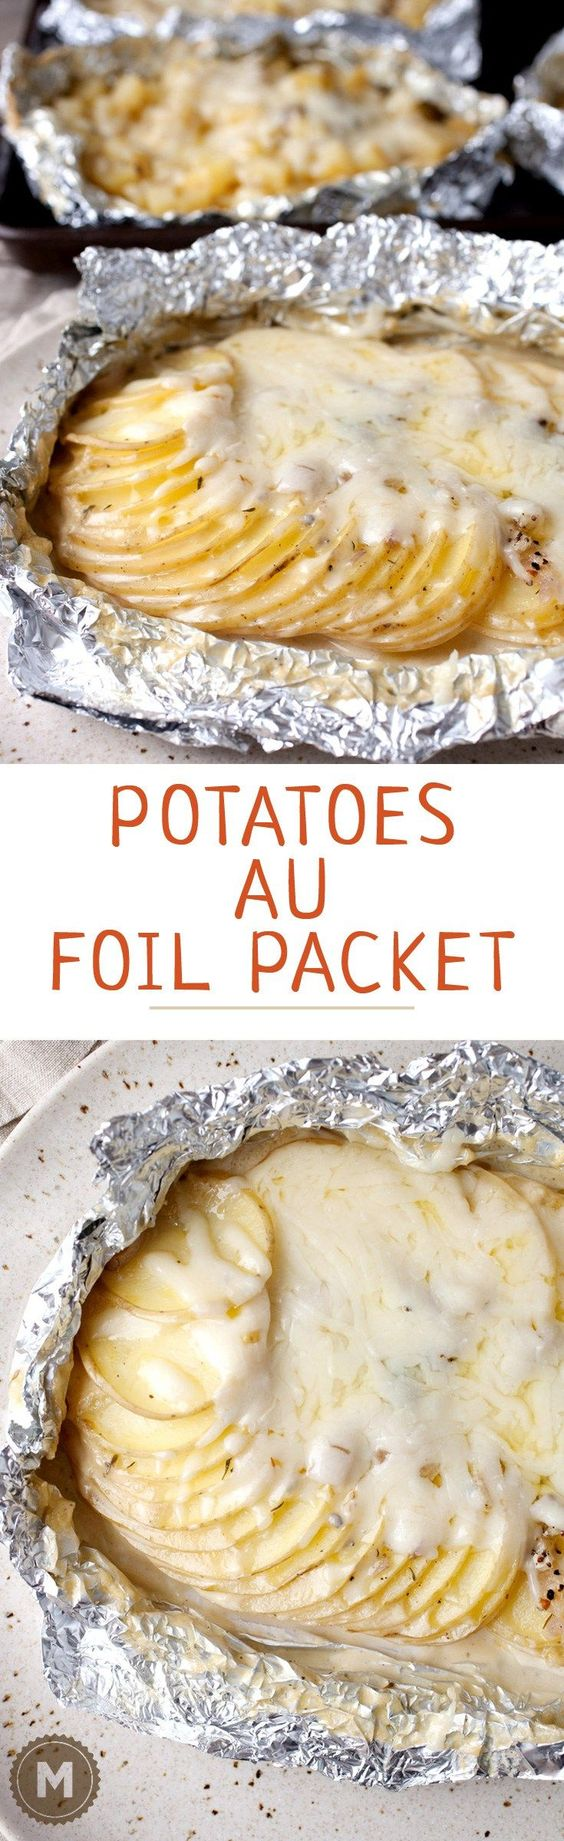 Potatoes Au Foil Packet